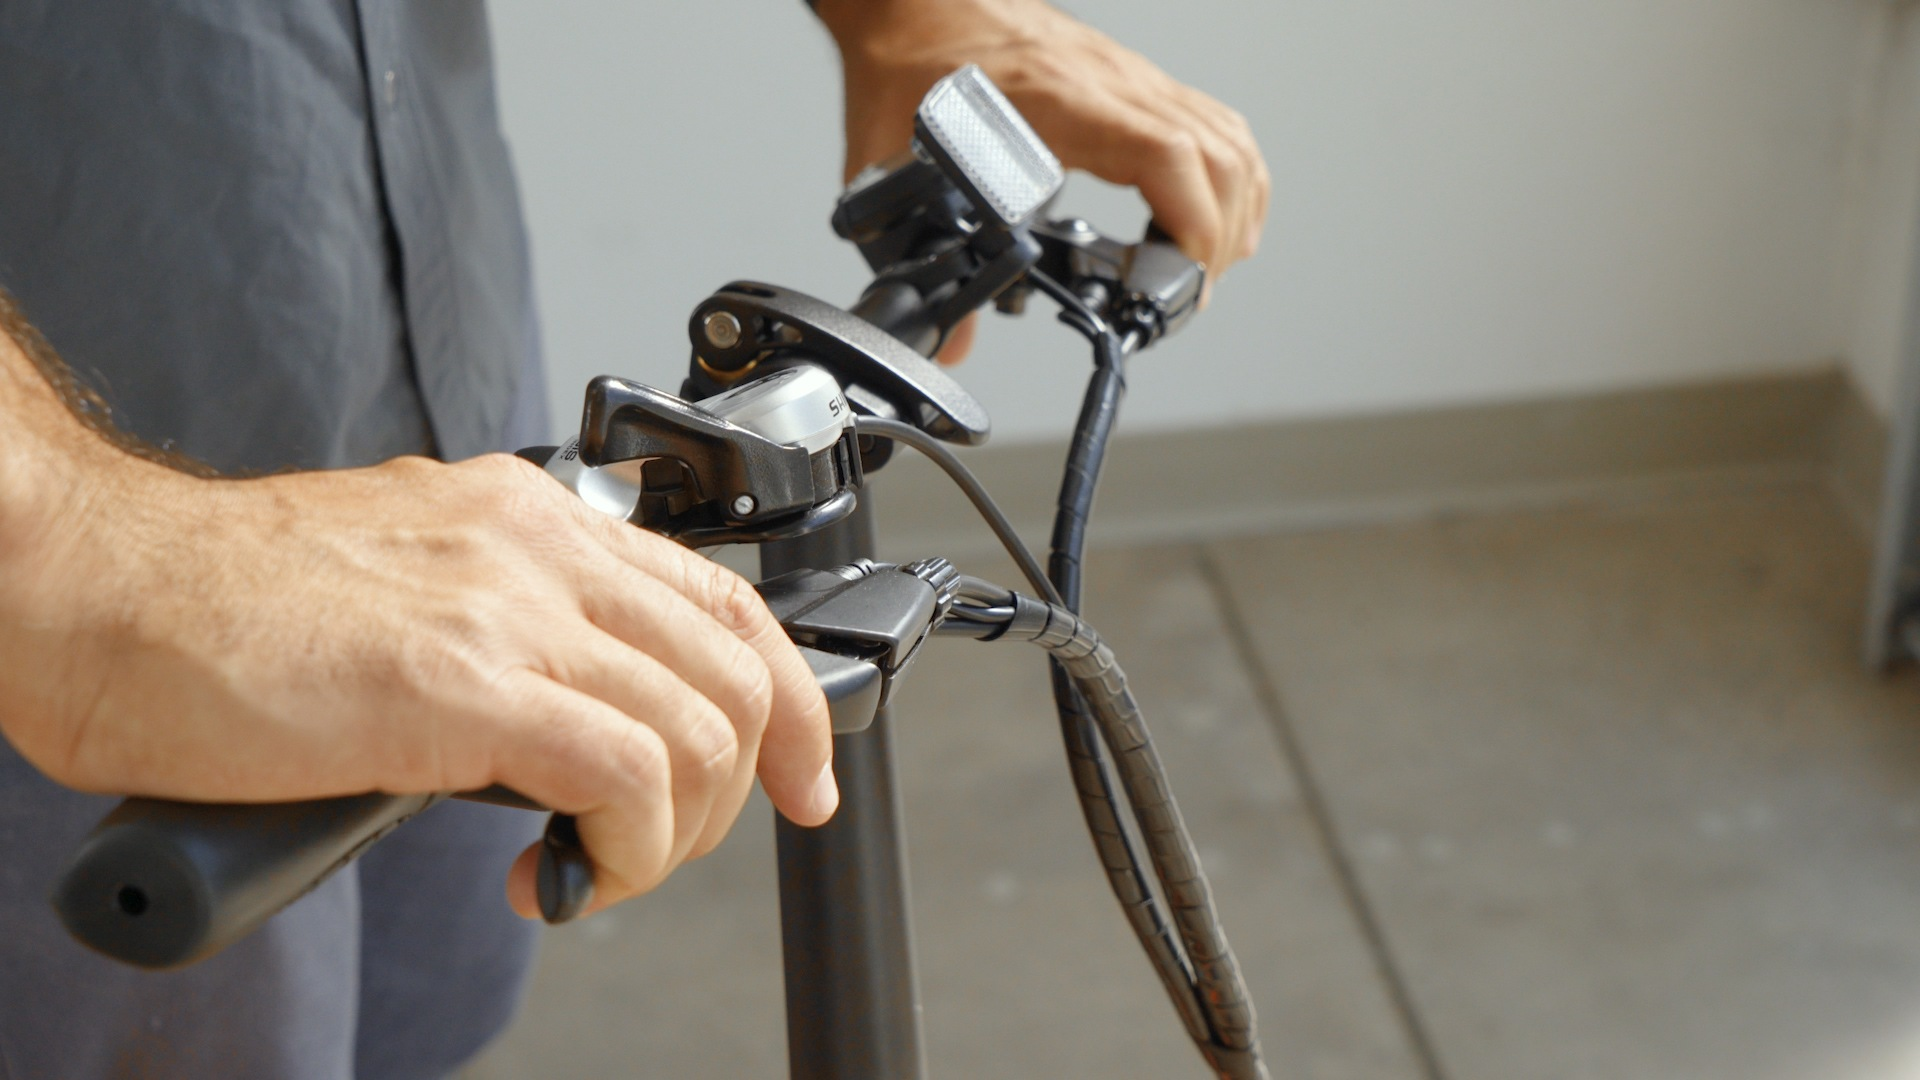 Closeup of man squeezing the hand-brakes on the handlebar.